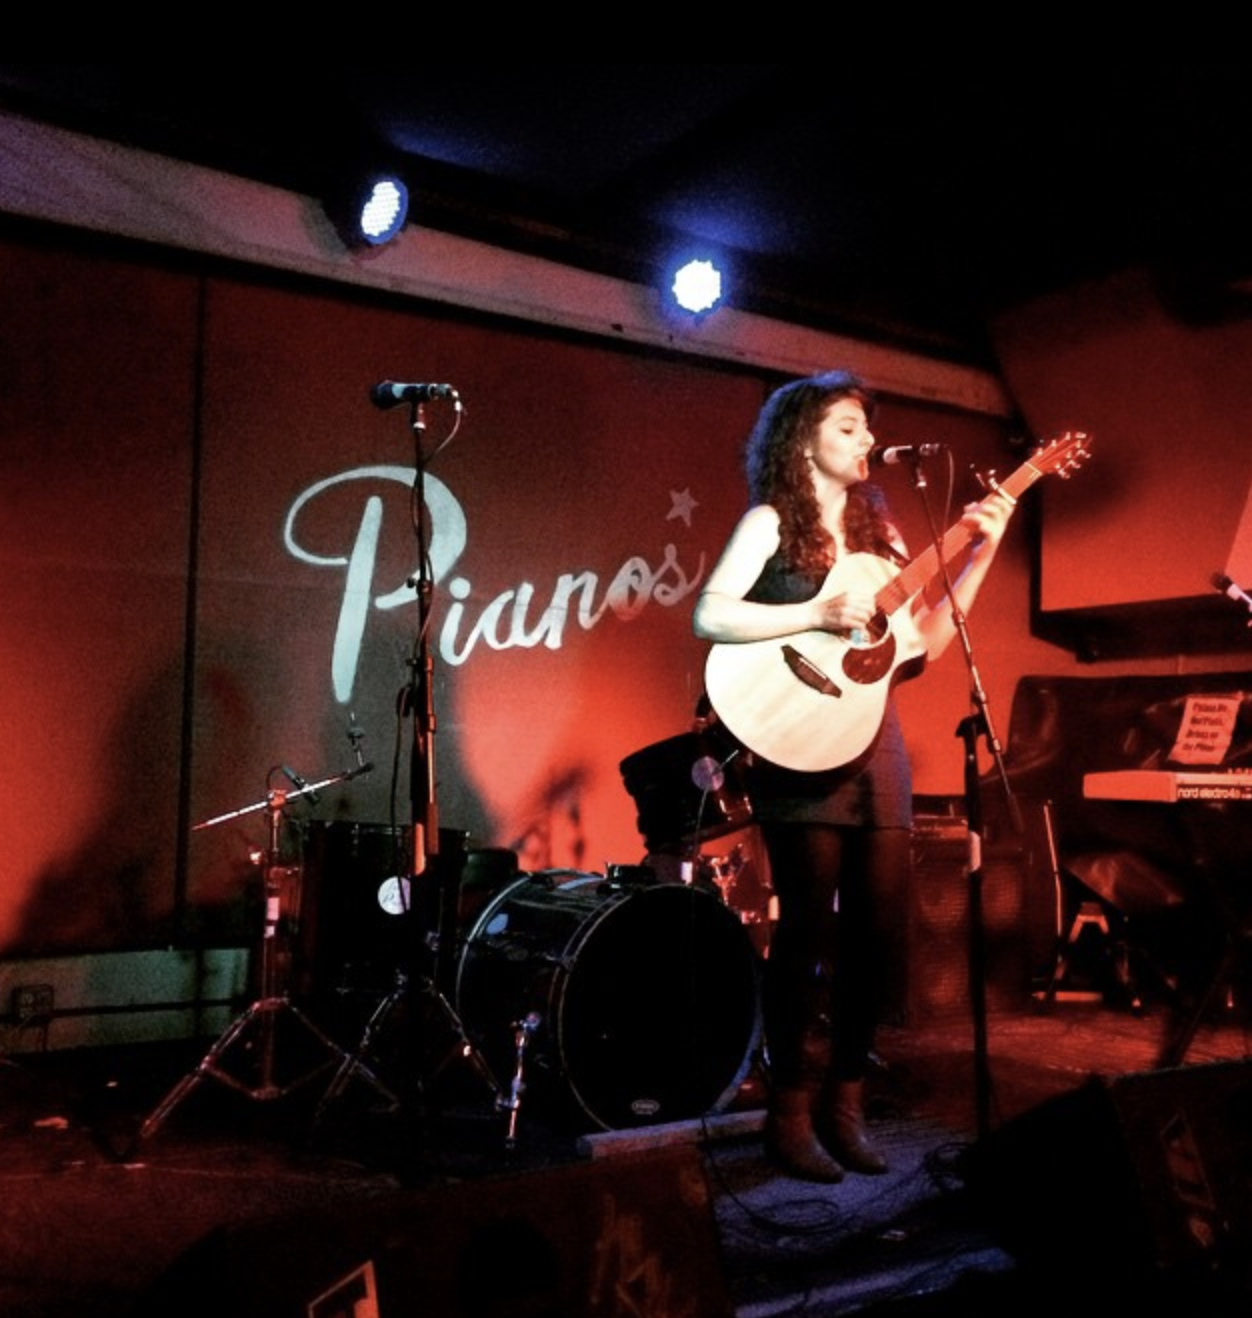 Melis Aker live at Pianos, New York